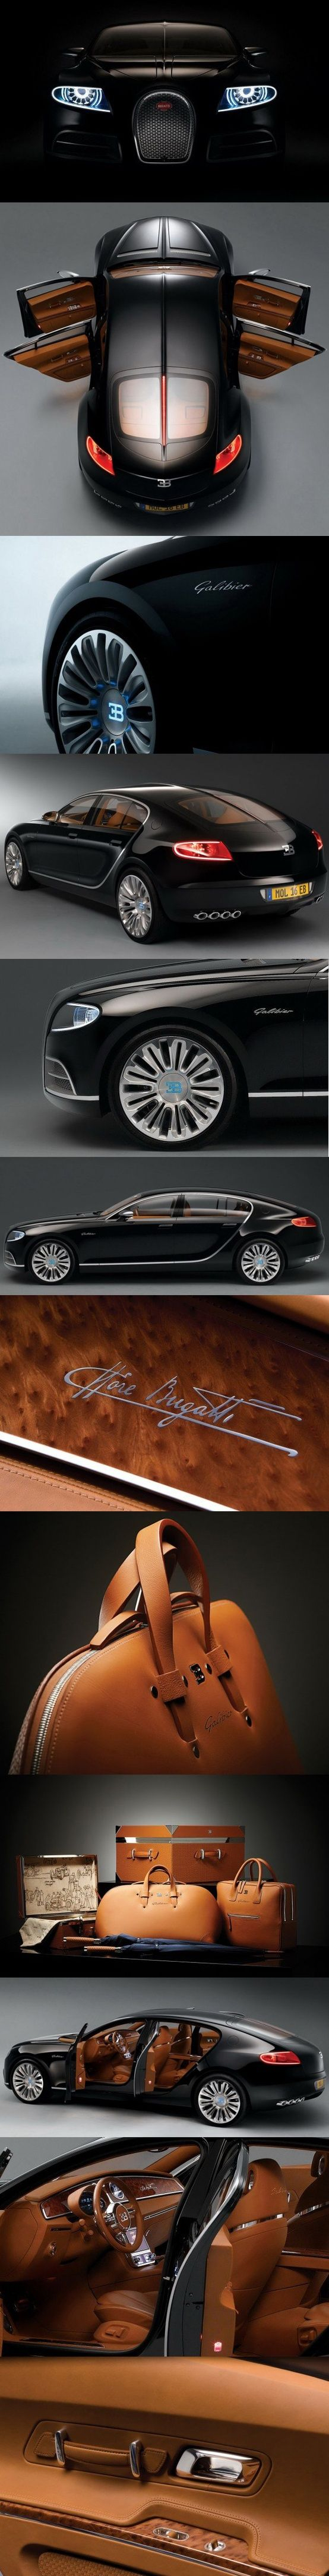 I l♥ve this car!! BUGATTI GALIBIER✖️Buggati✖️More Pins Like This One At FOSTERGINGER @ Pinterest✖️